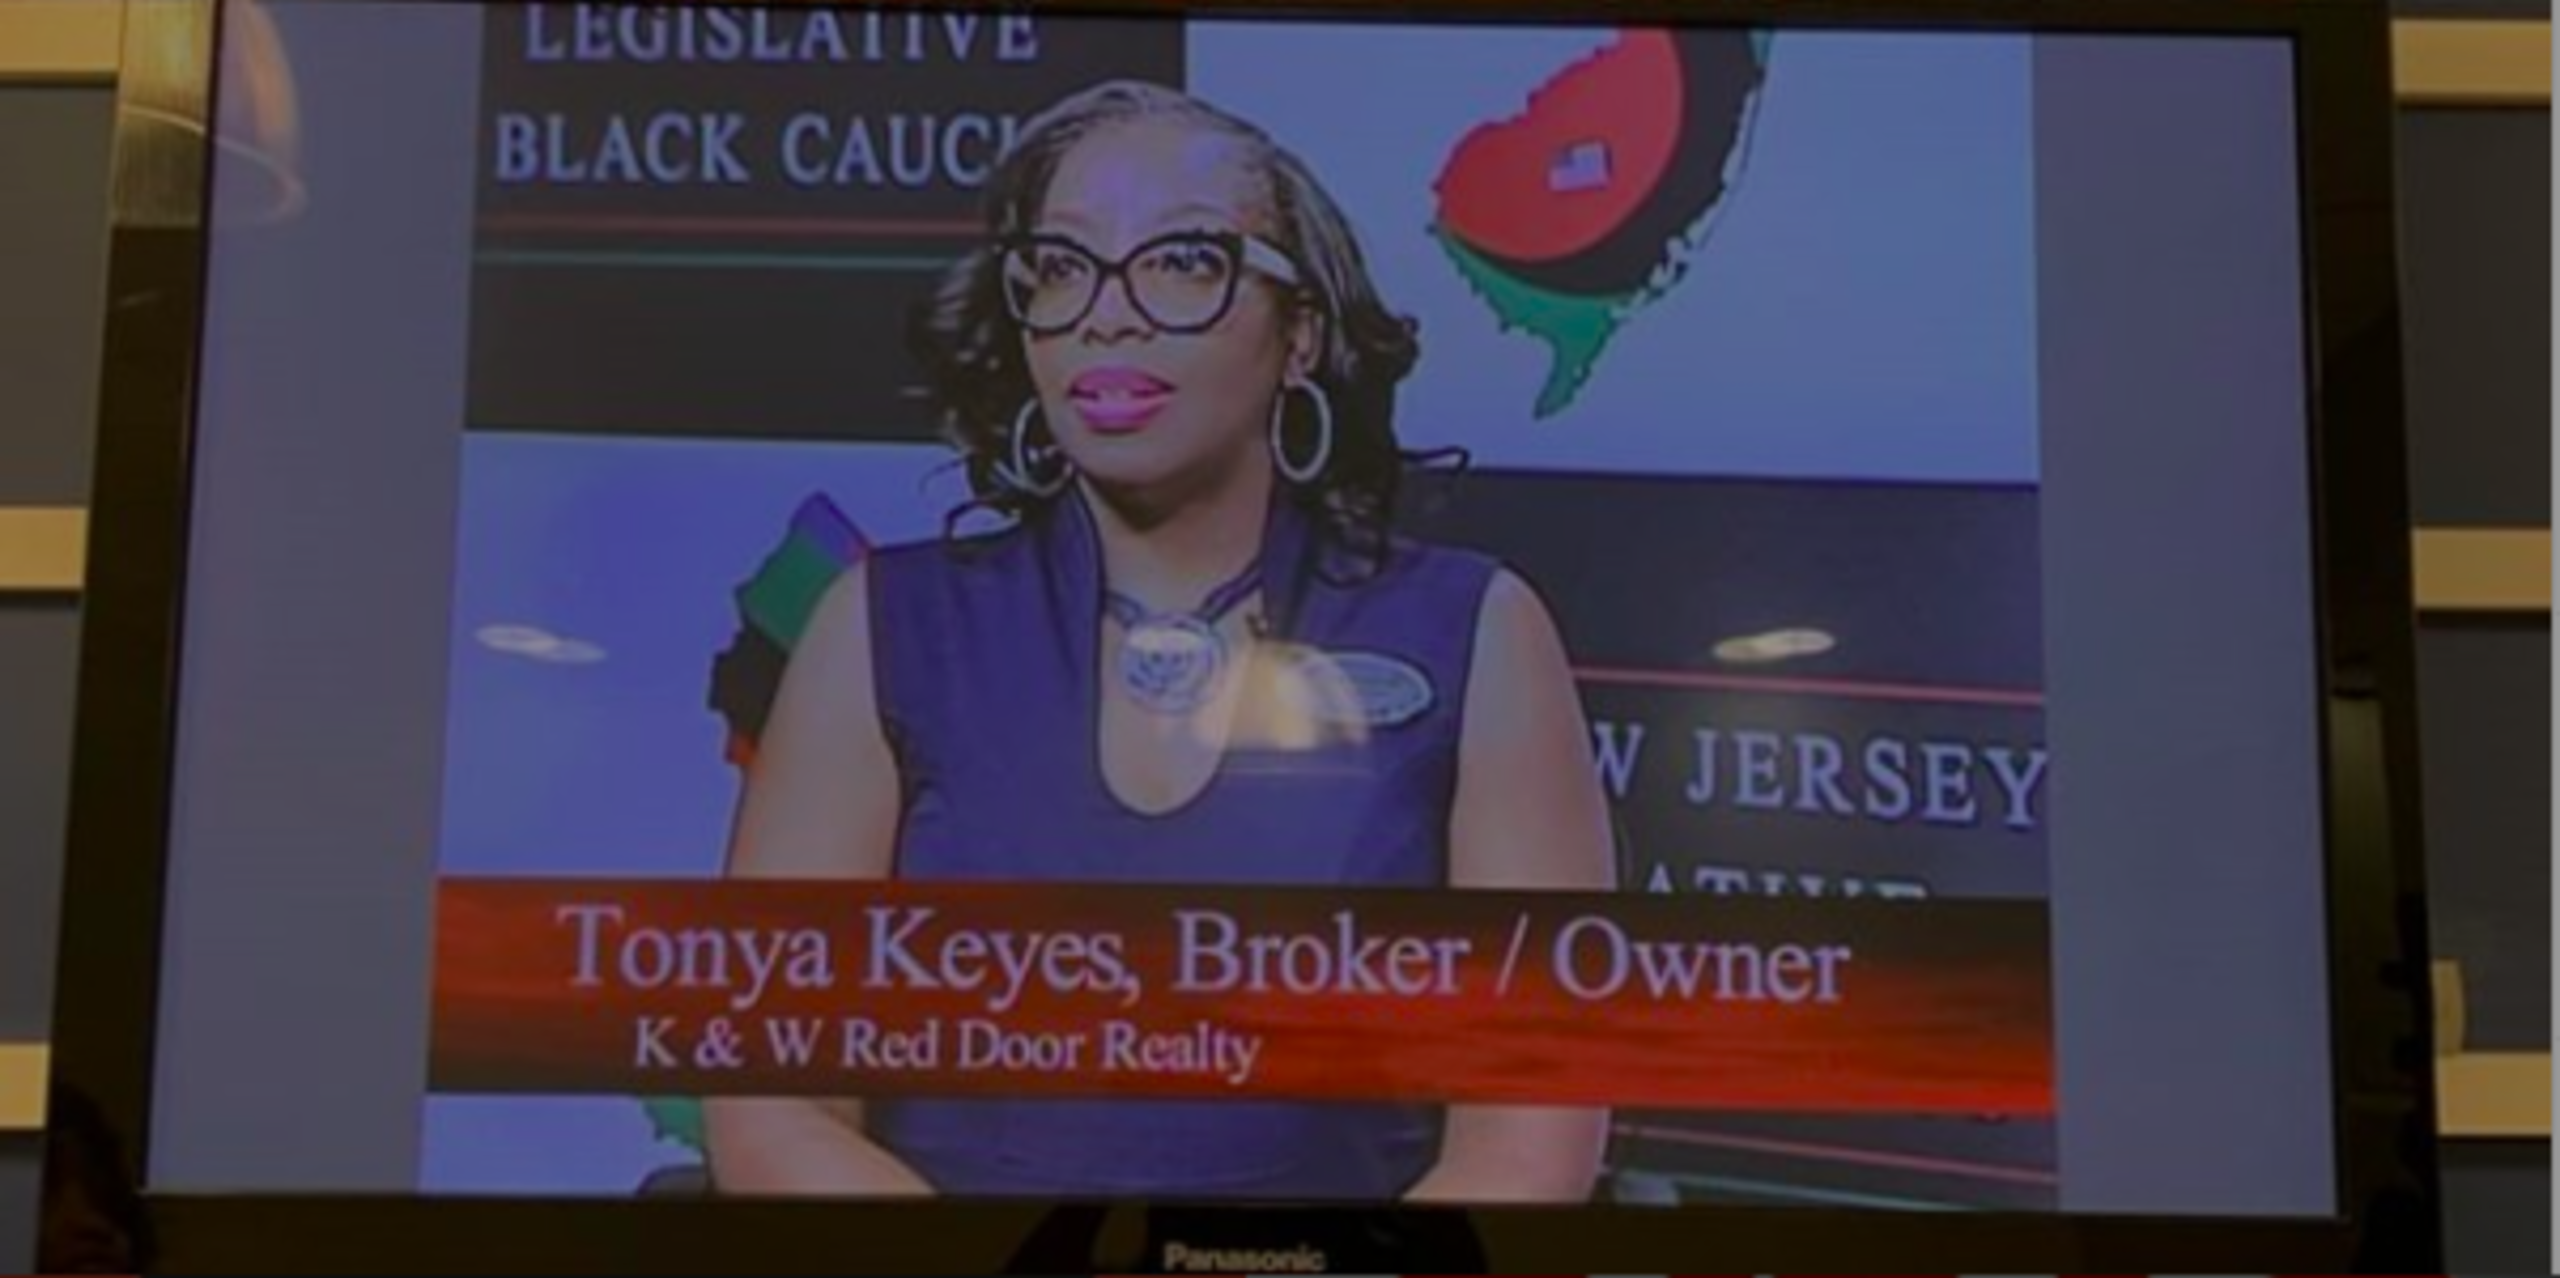 I appeared on TV – The New Jersey Legislative Black Caucus show